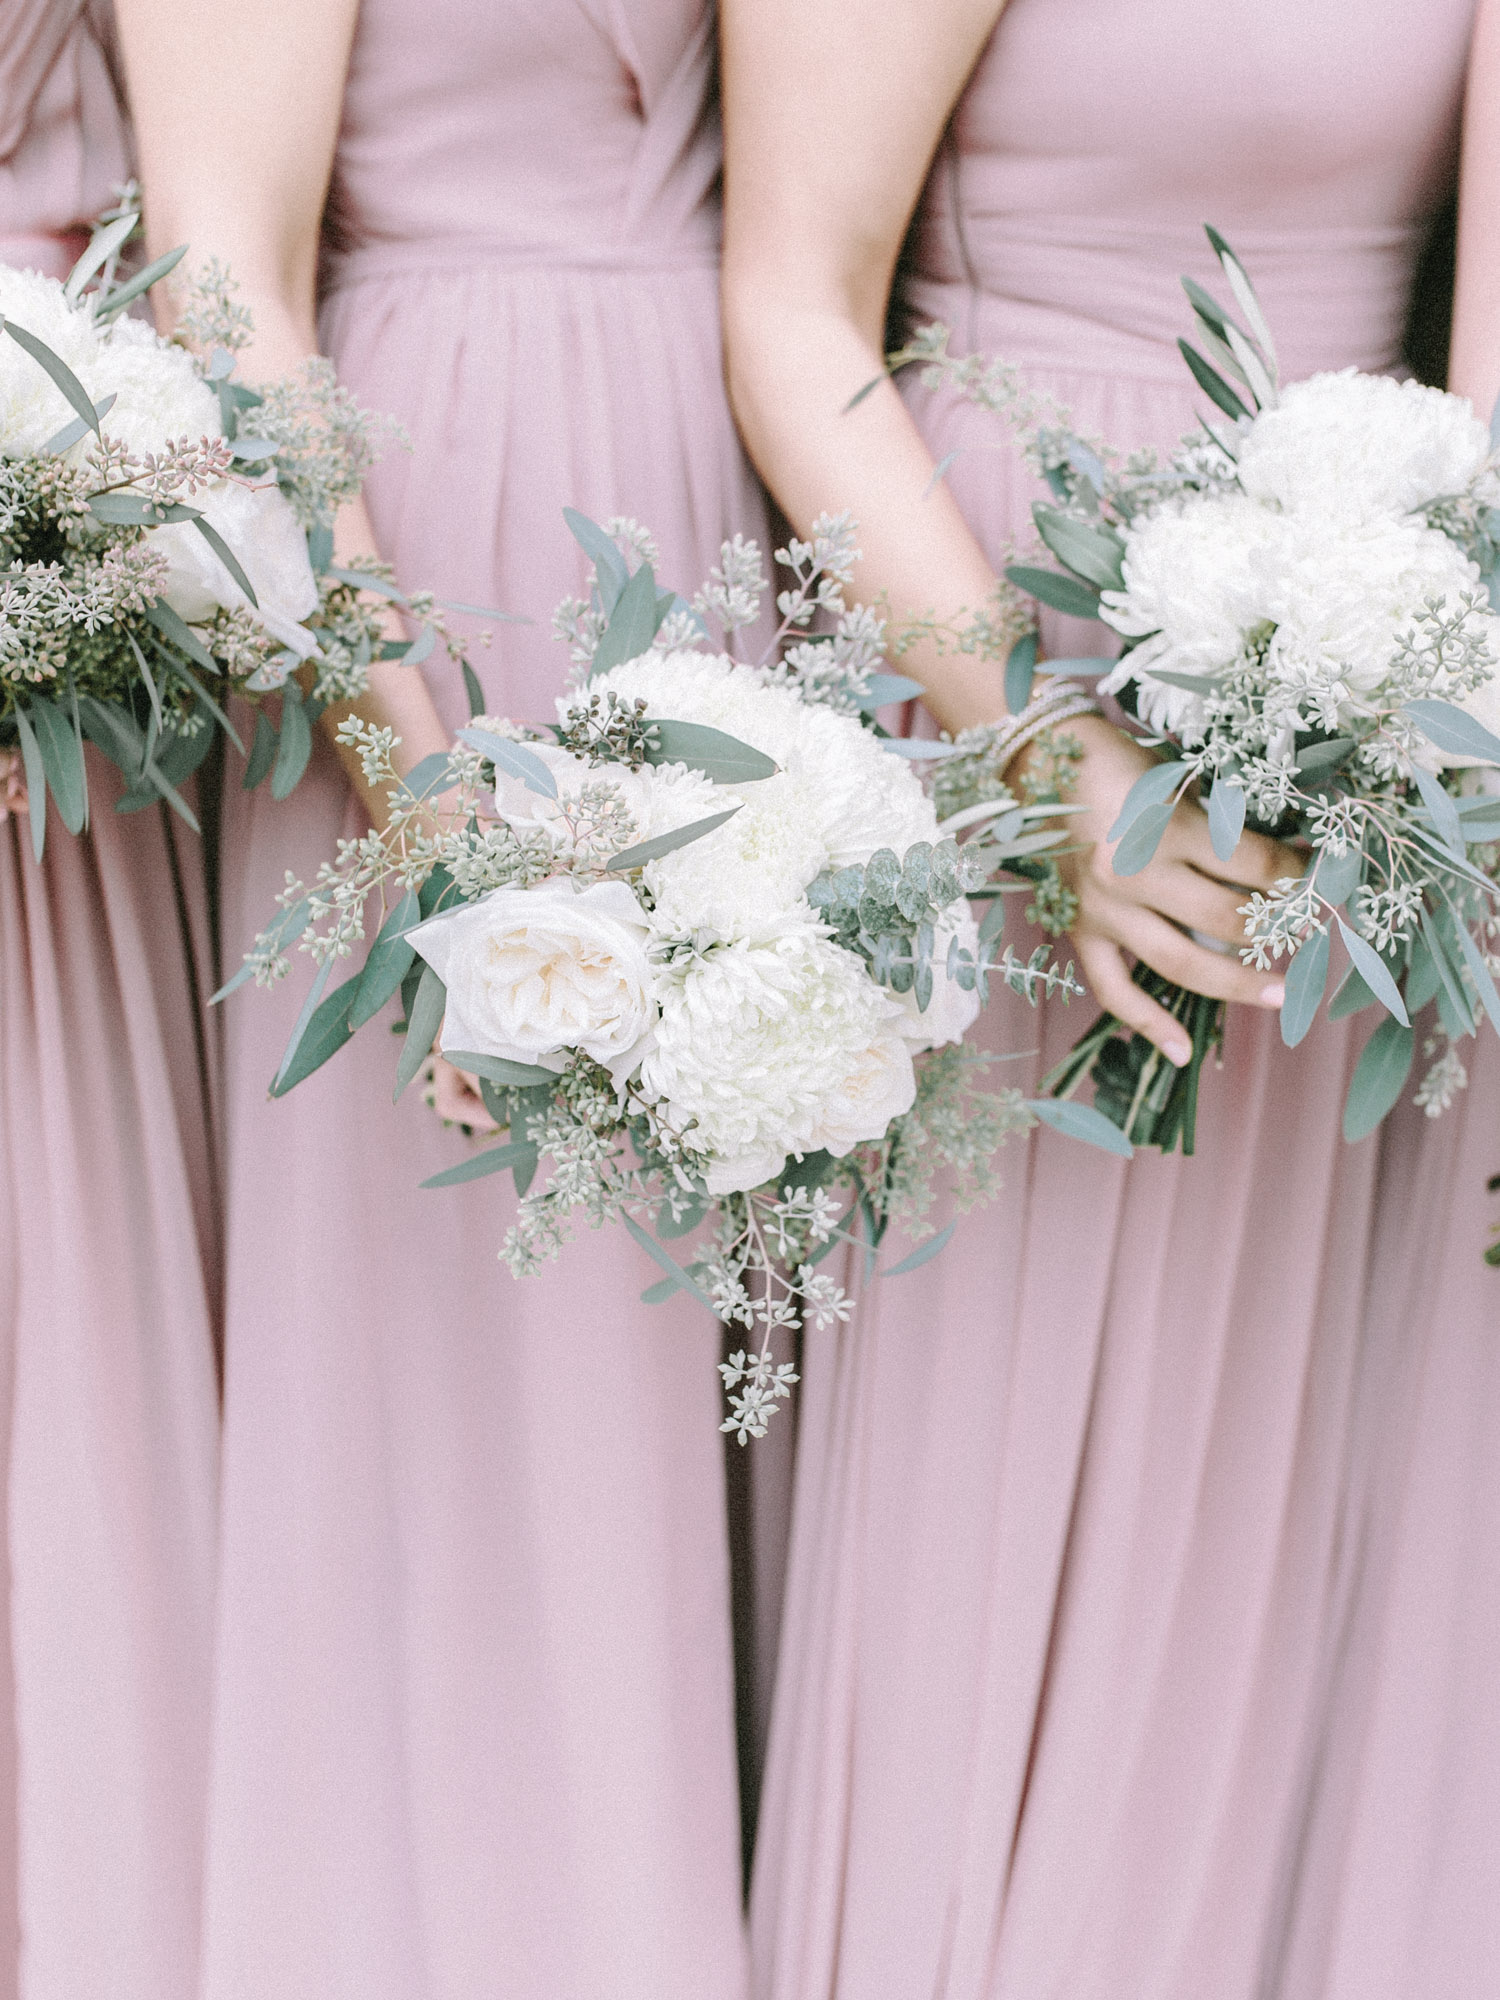 Bridesmaids in romantic blush gowns hold bouquets with big white flowers and seeded eucalyptus